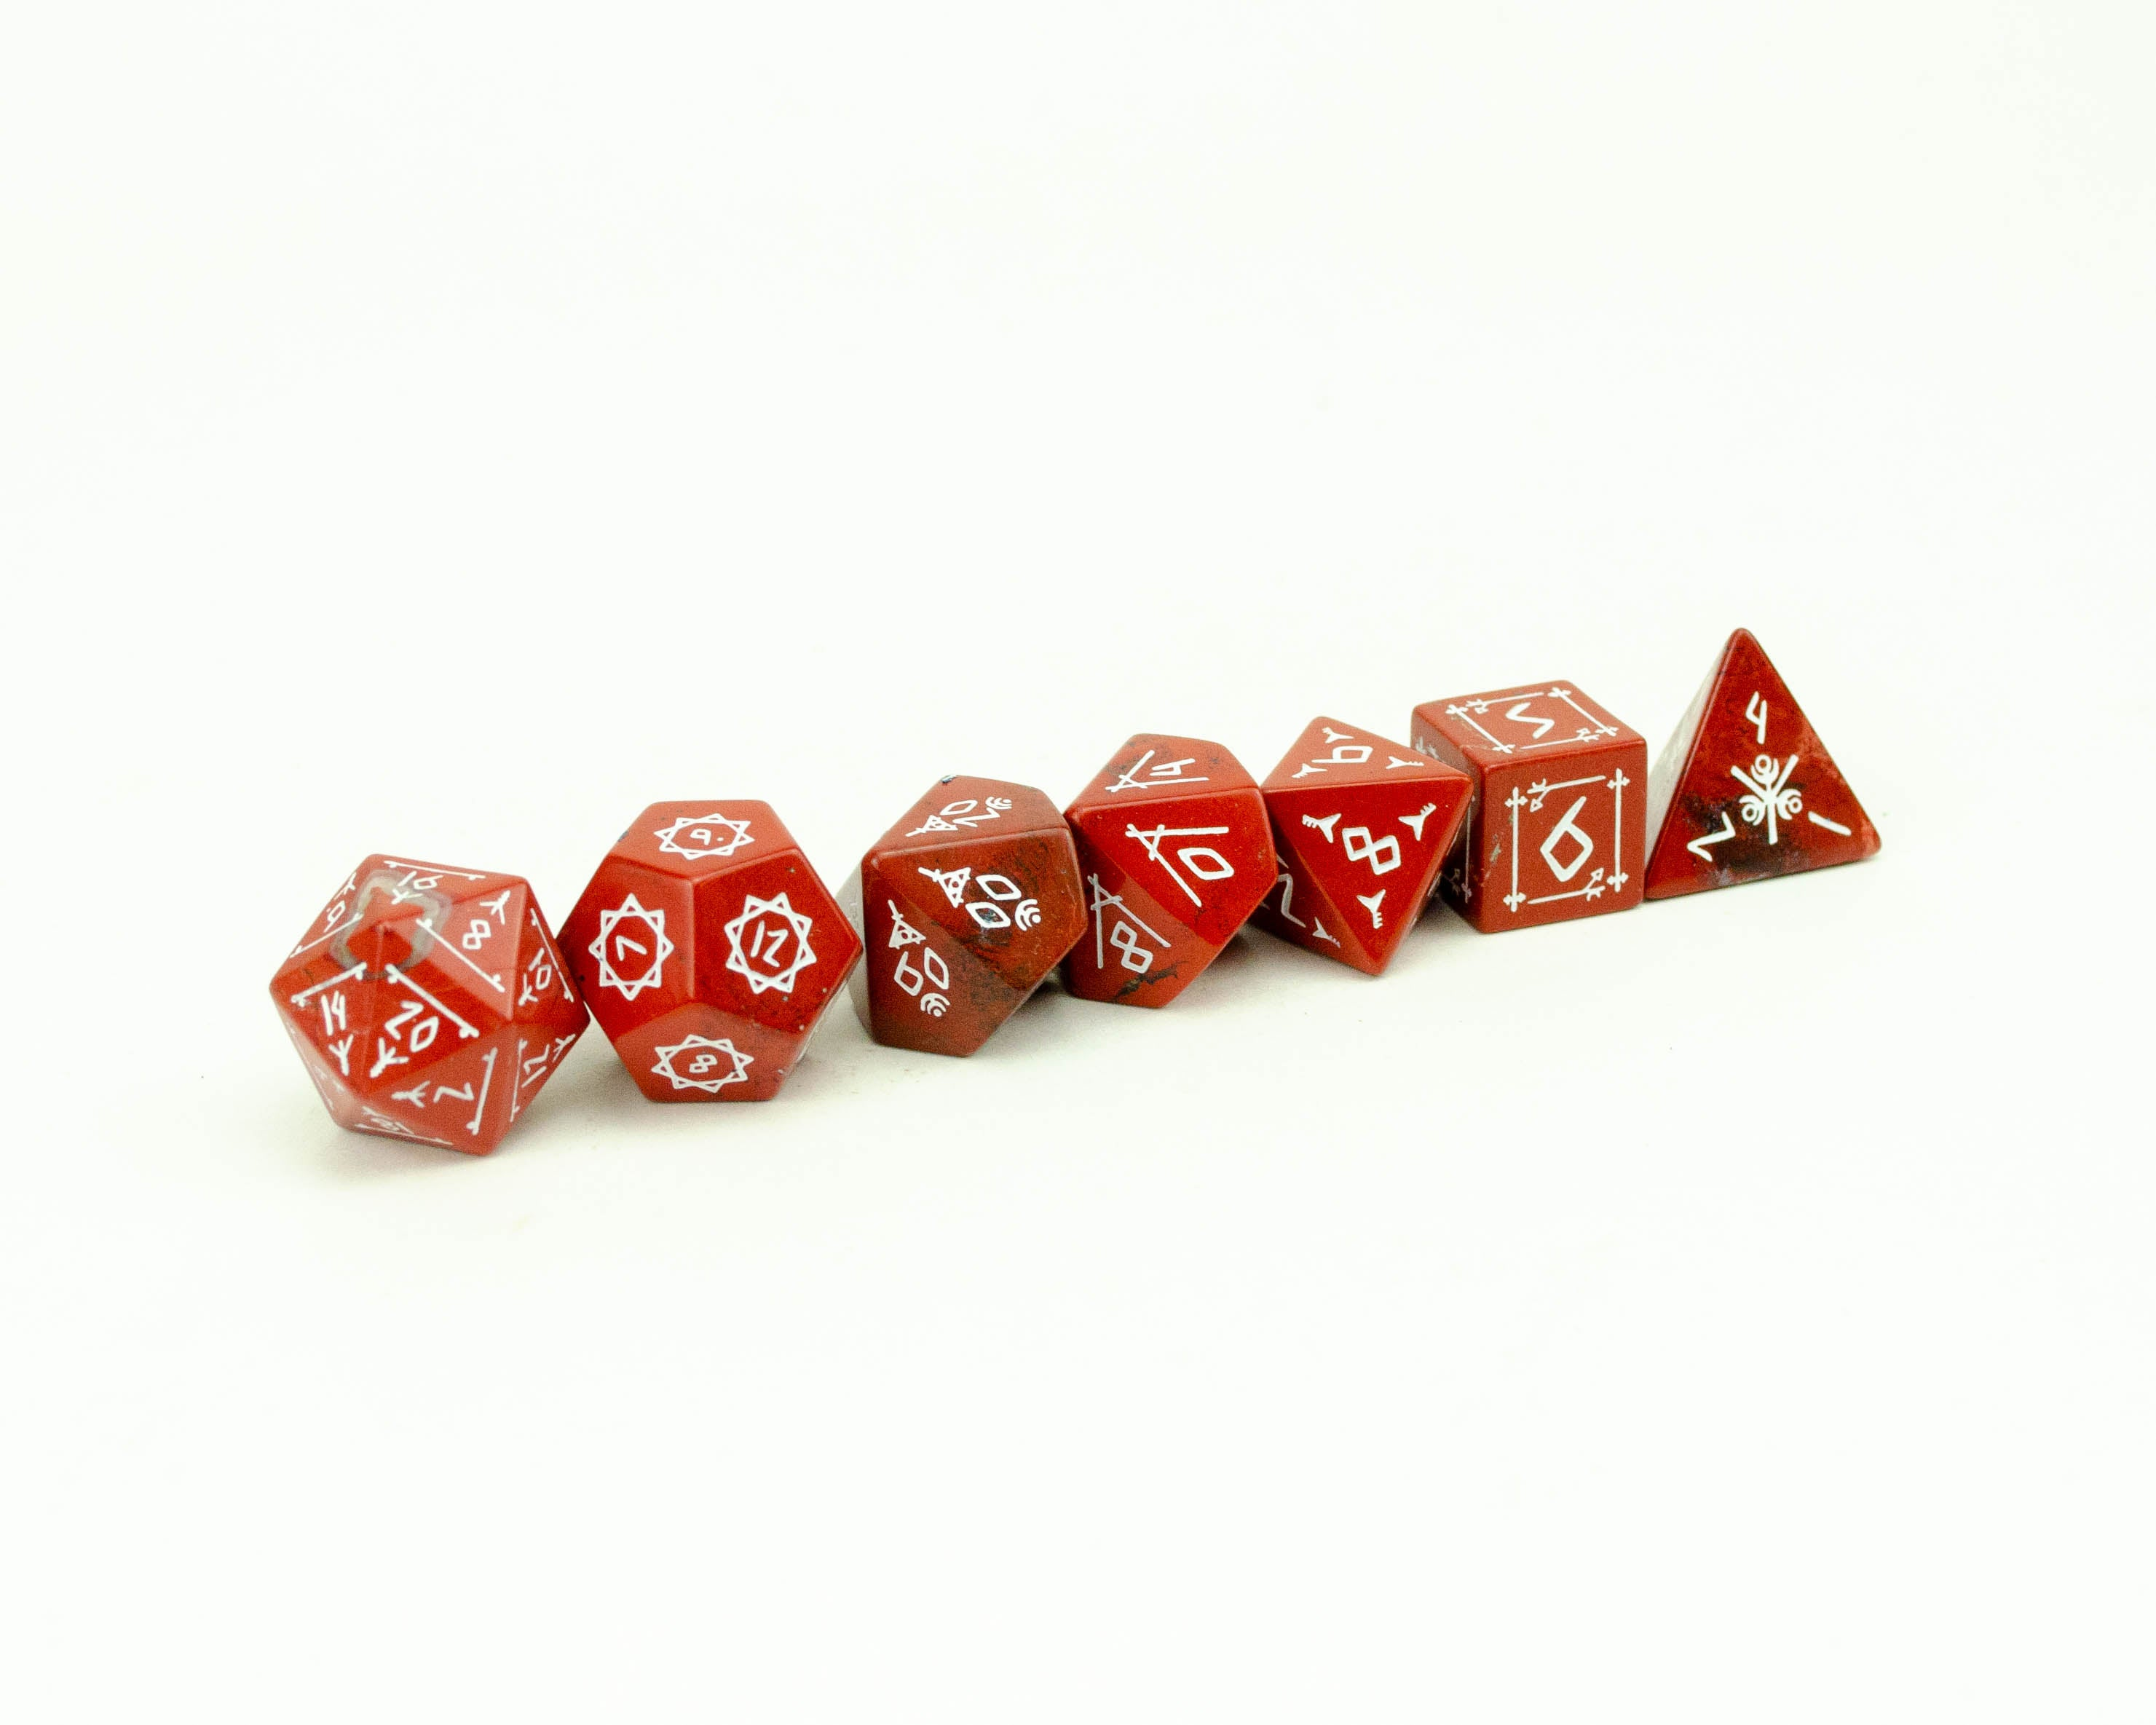 Halloween Dice Set and Vault by Wyrmwood